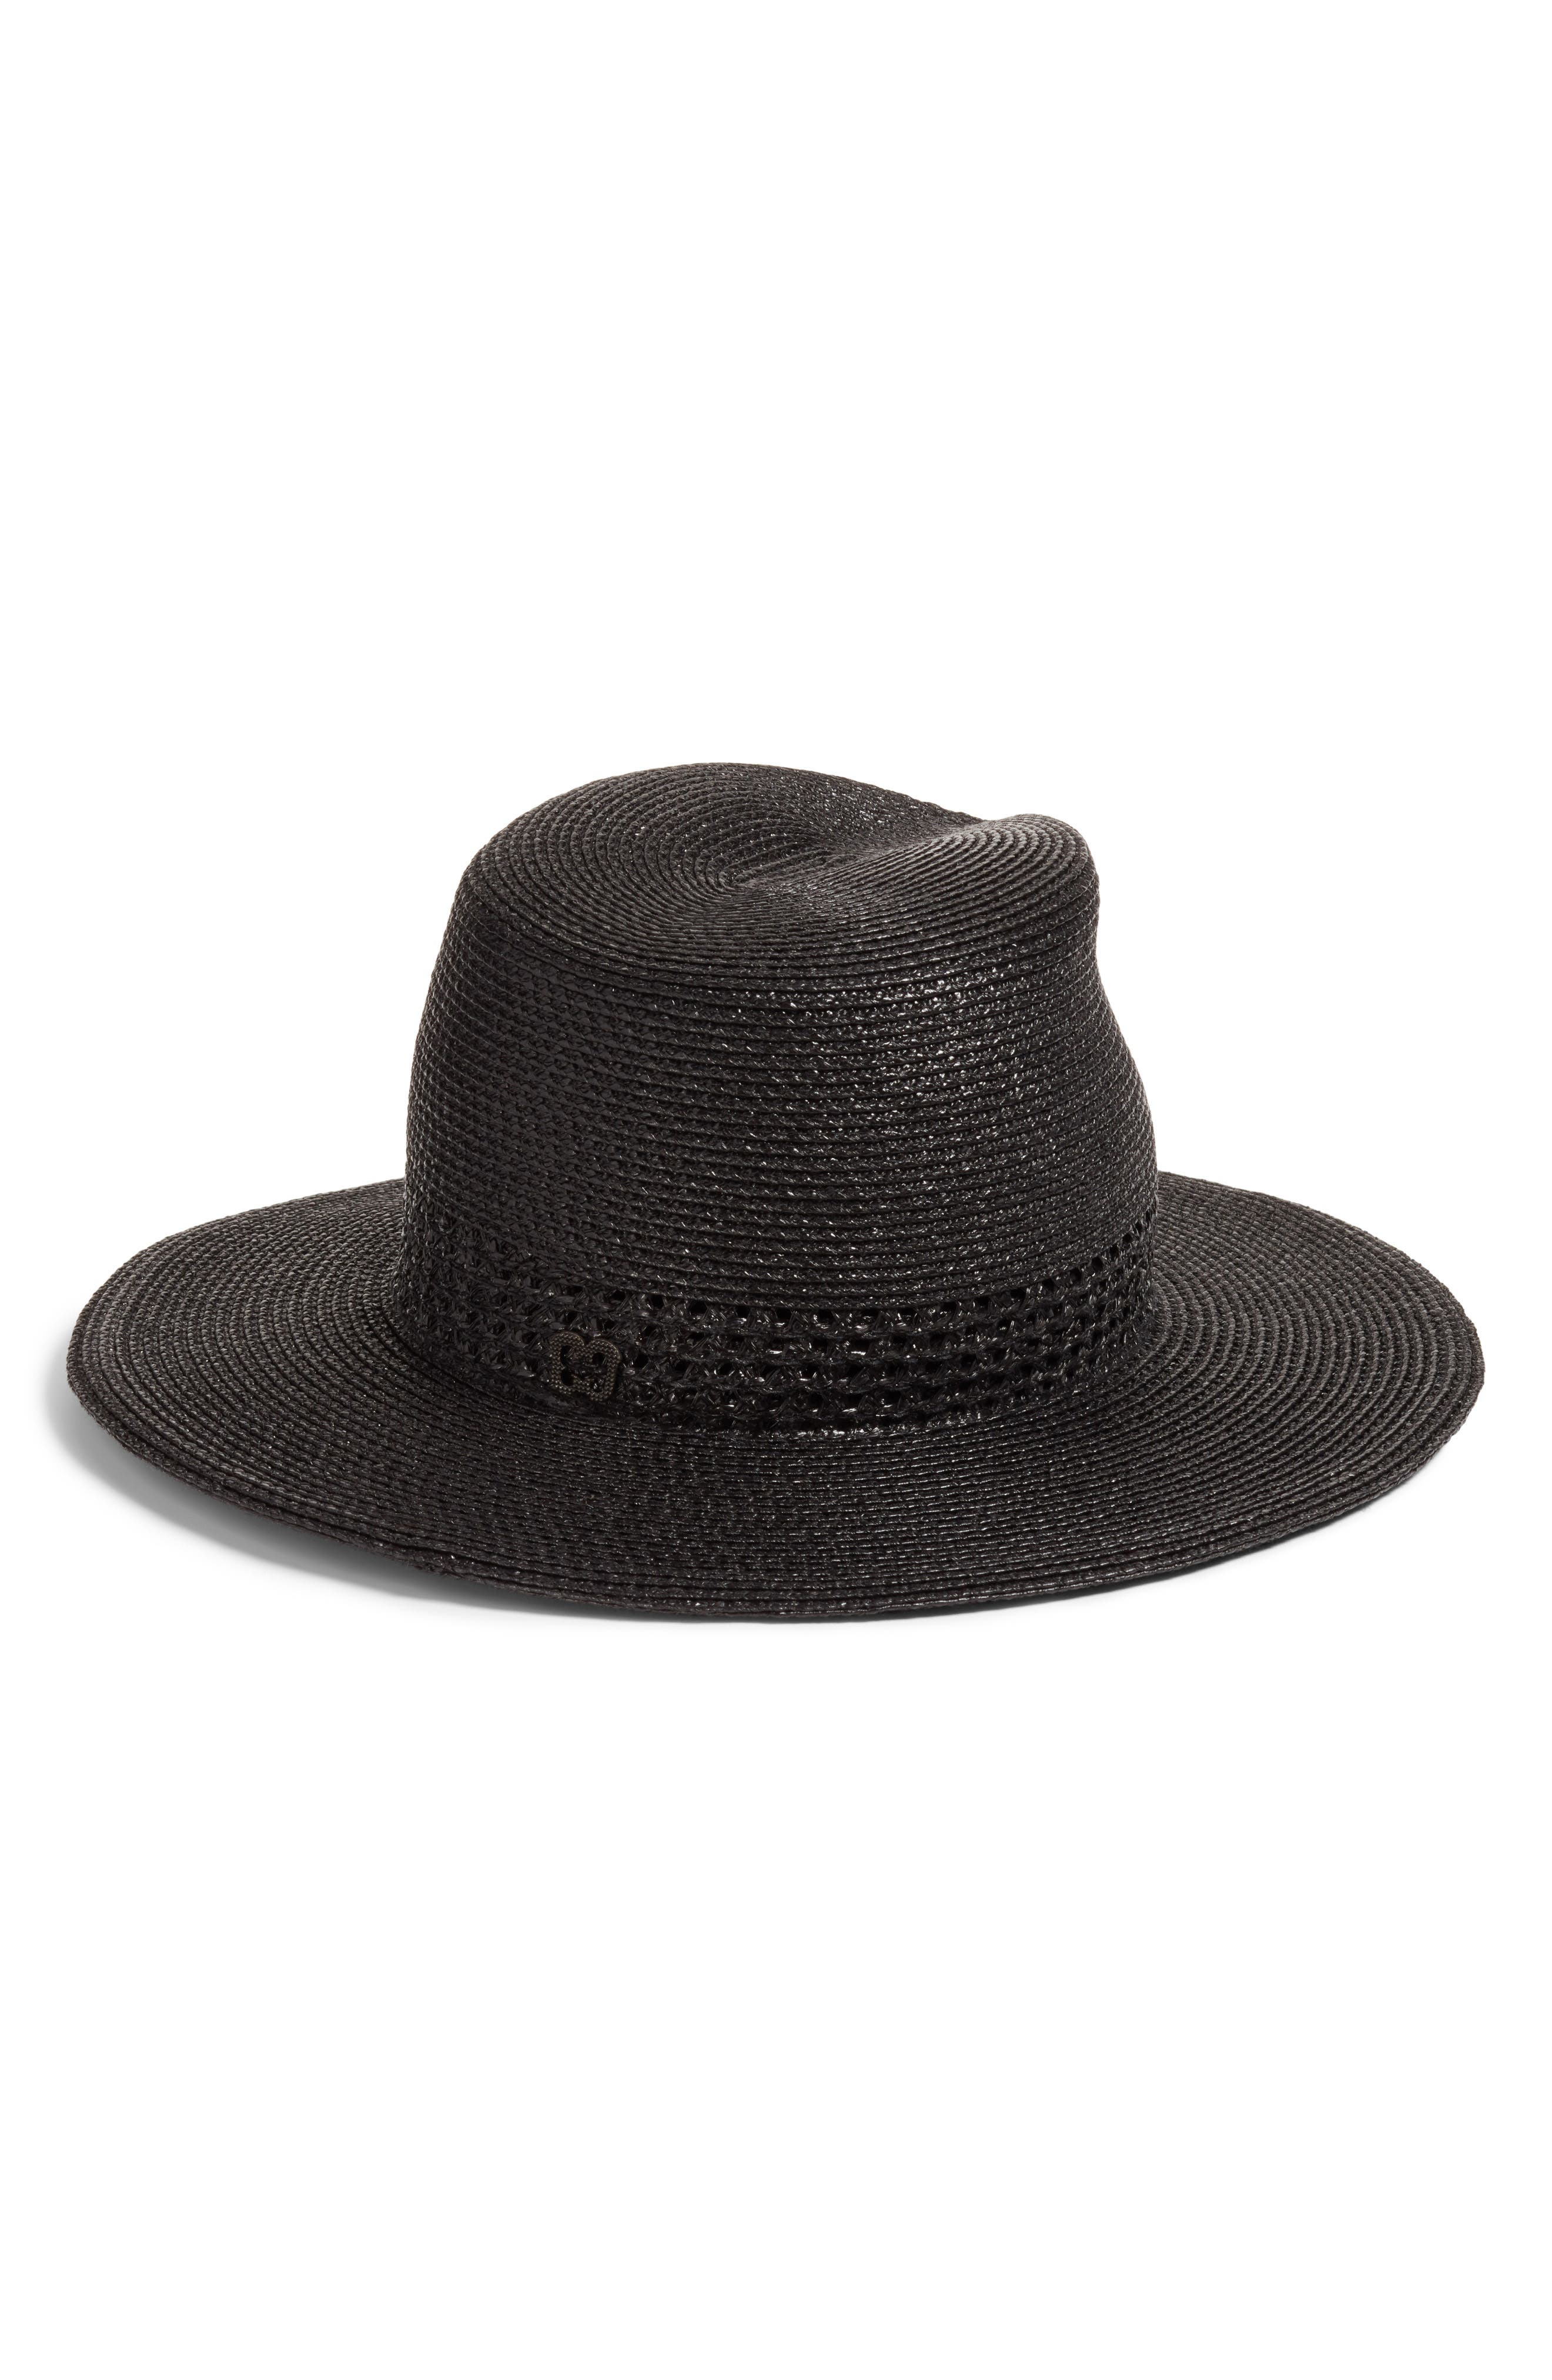 Bayou Packable Squishee<sup>®</sup> Fedora,                             Alternate thumbnail 2, color,                             Black